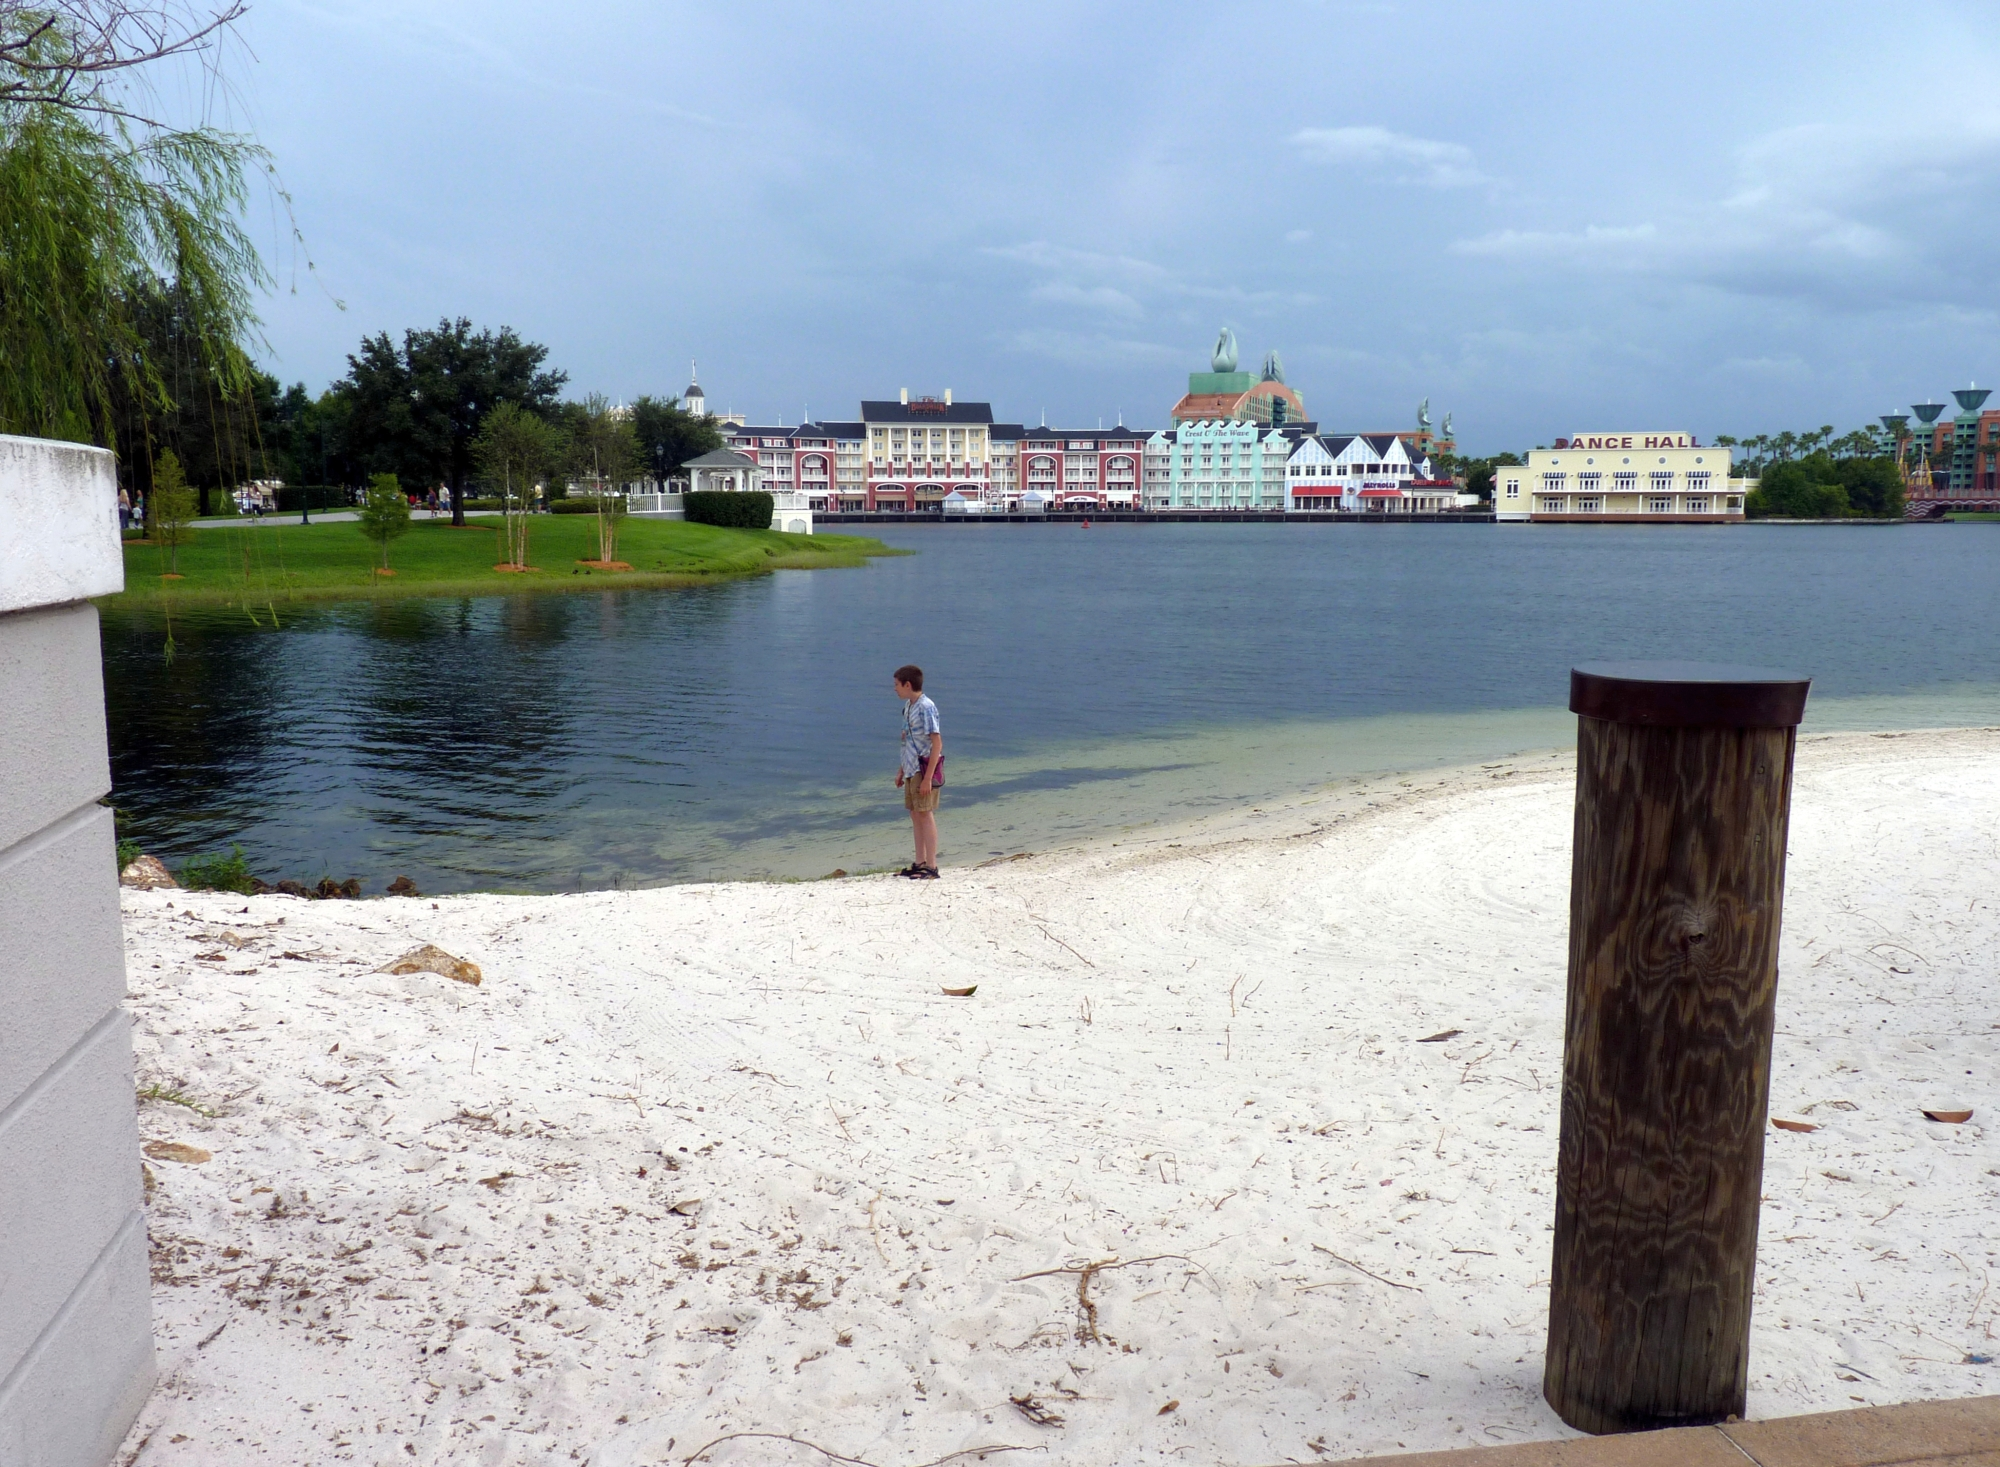 Jud's Disney Picture of the Day: On the Beach